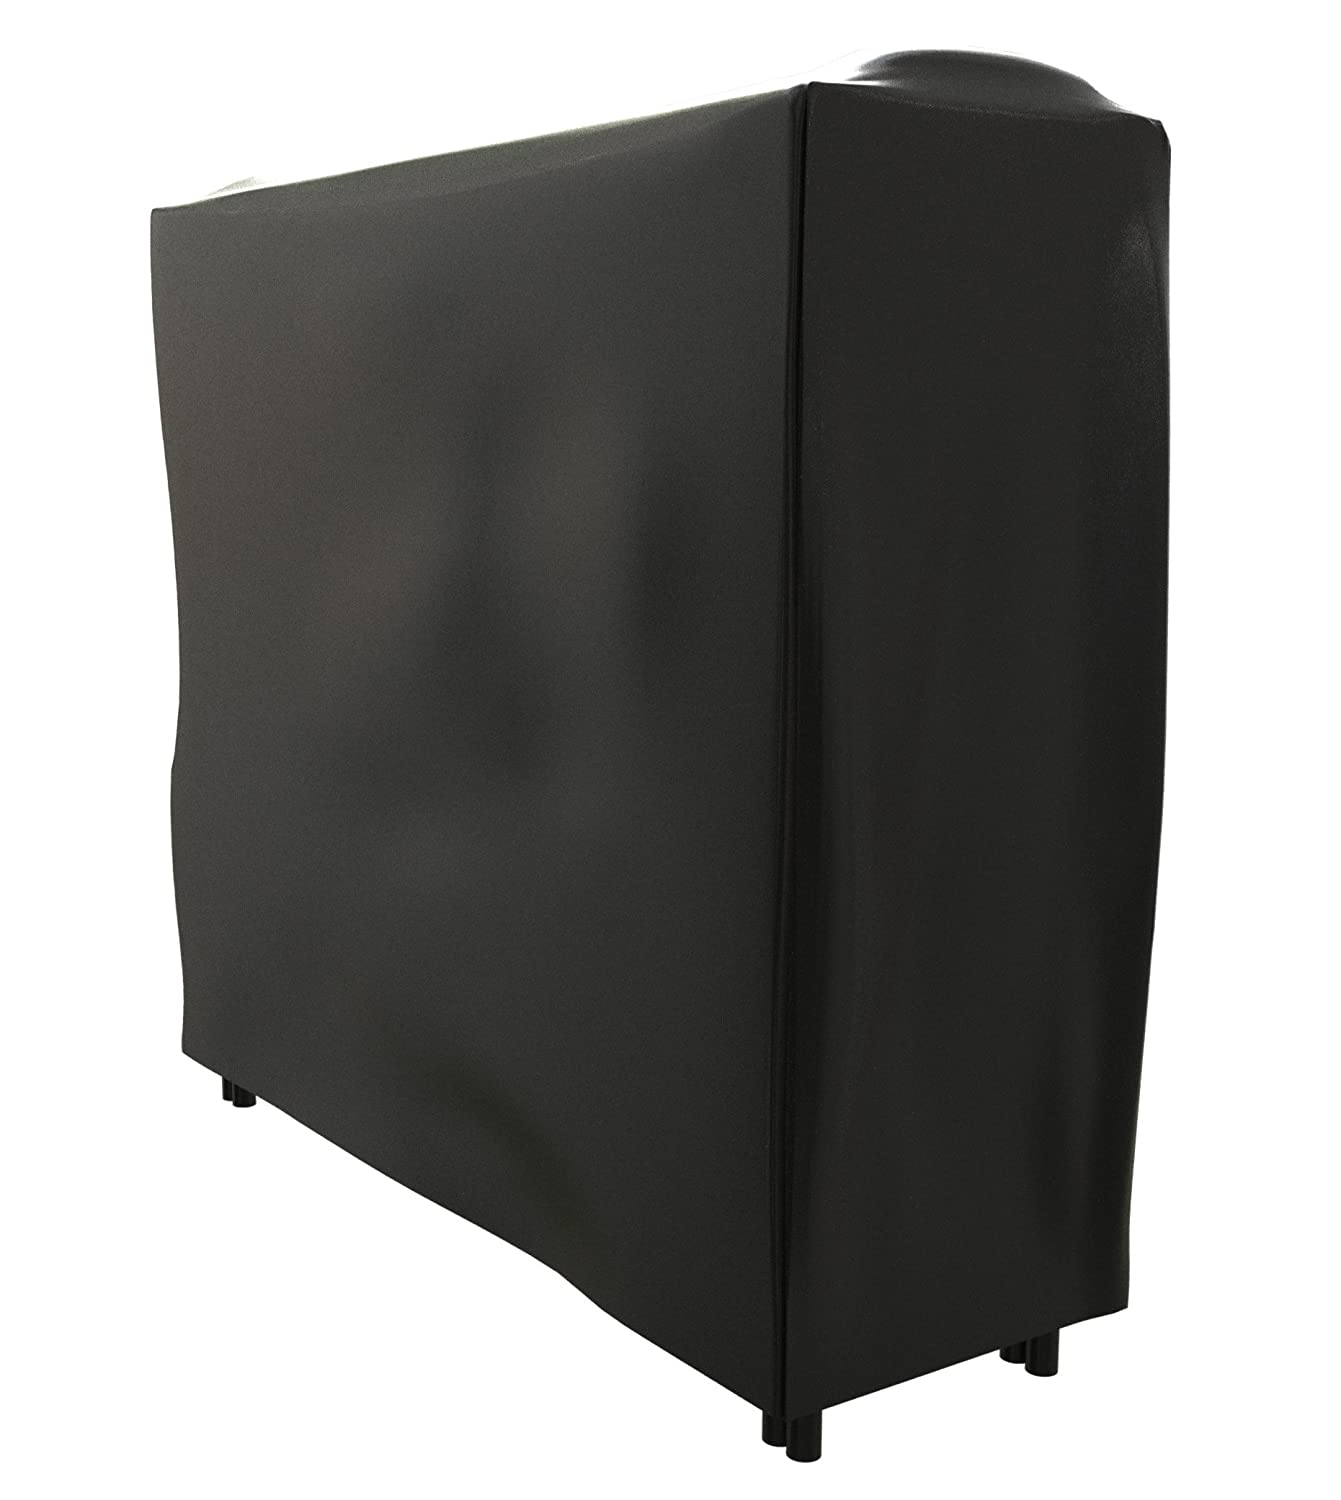 Amazon.com: Panacea, vinilo Log rack Cover, Black, Negro ...